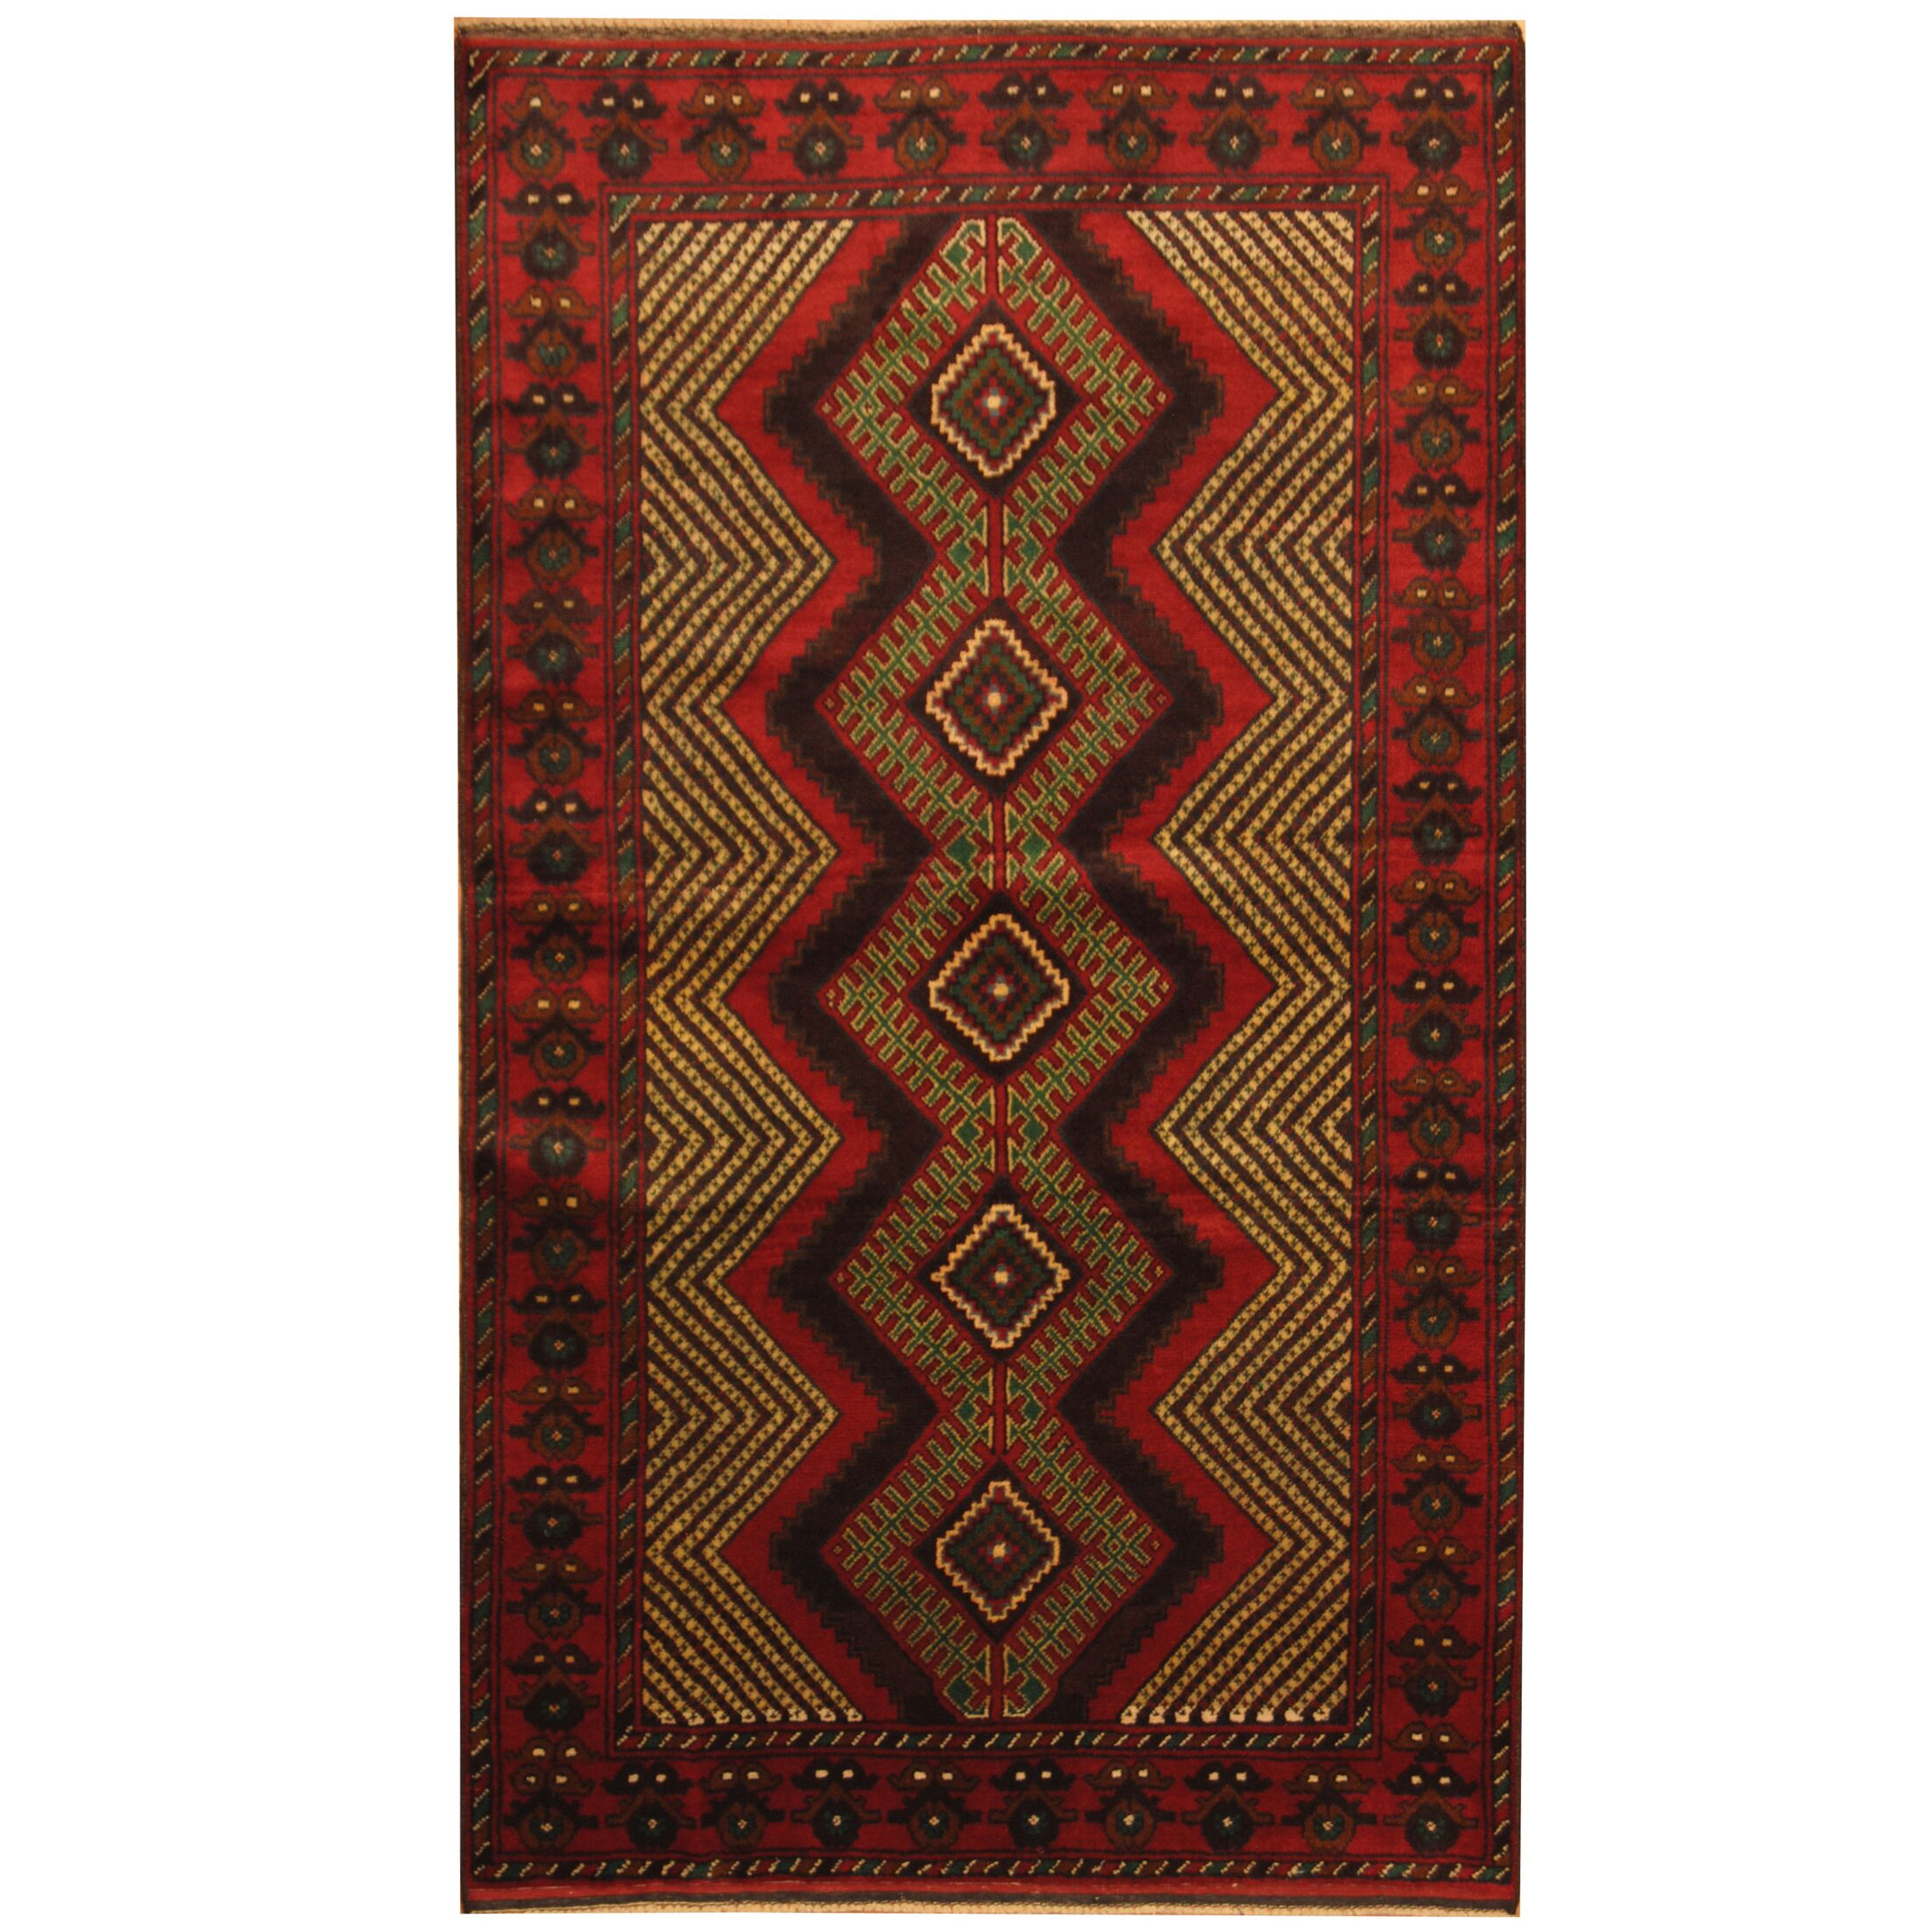 Prentice Tribal Balouchi Hand-Knotted Red/Ivory Area Rug